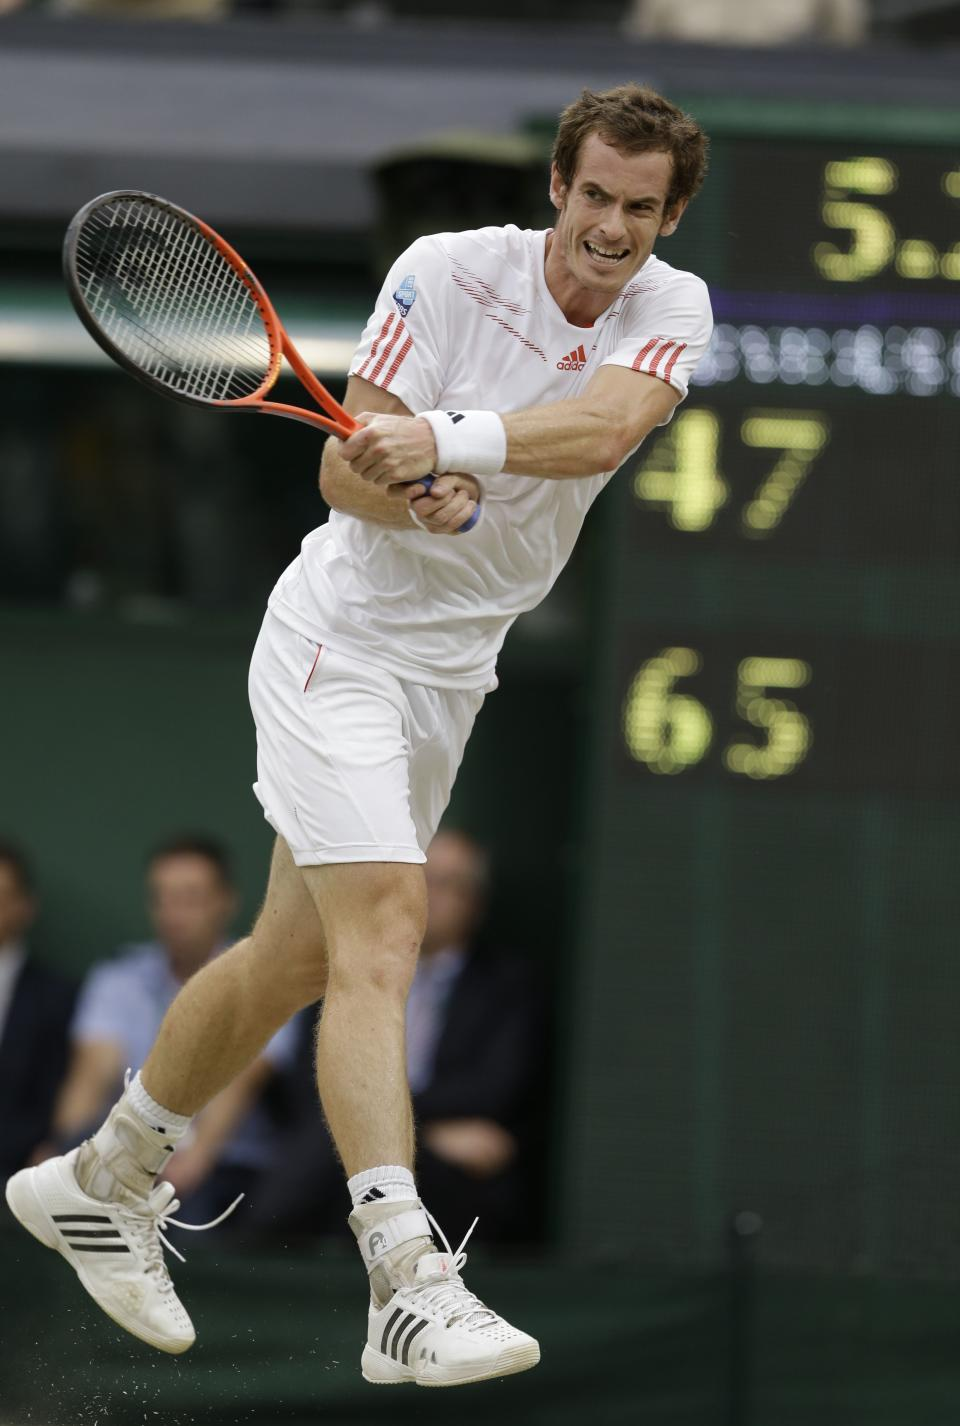 Andy Murray of Britain plays a shot to Roger Federer of Switzerland during the men's final match at the All England Lawn Tennis Championships at Wimbledon, England, Sunday, July 8, 2012. (AP Photo/Kirsty Wigglesworth)